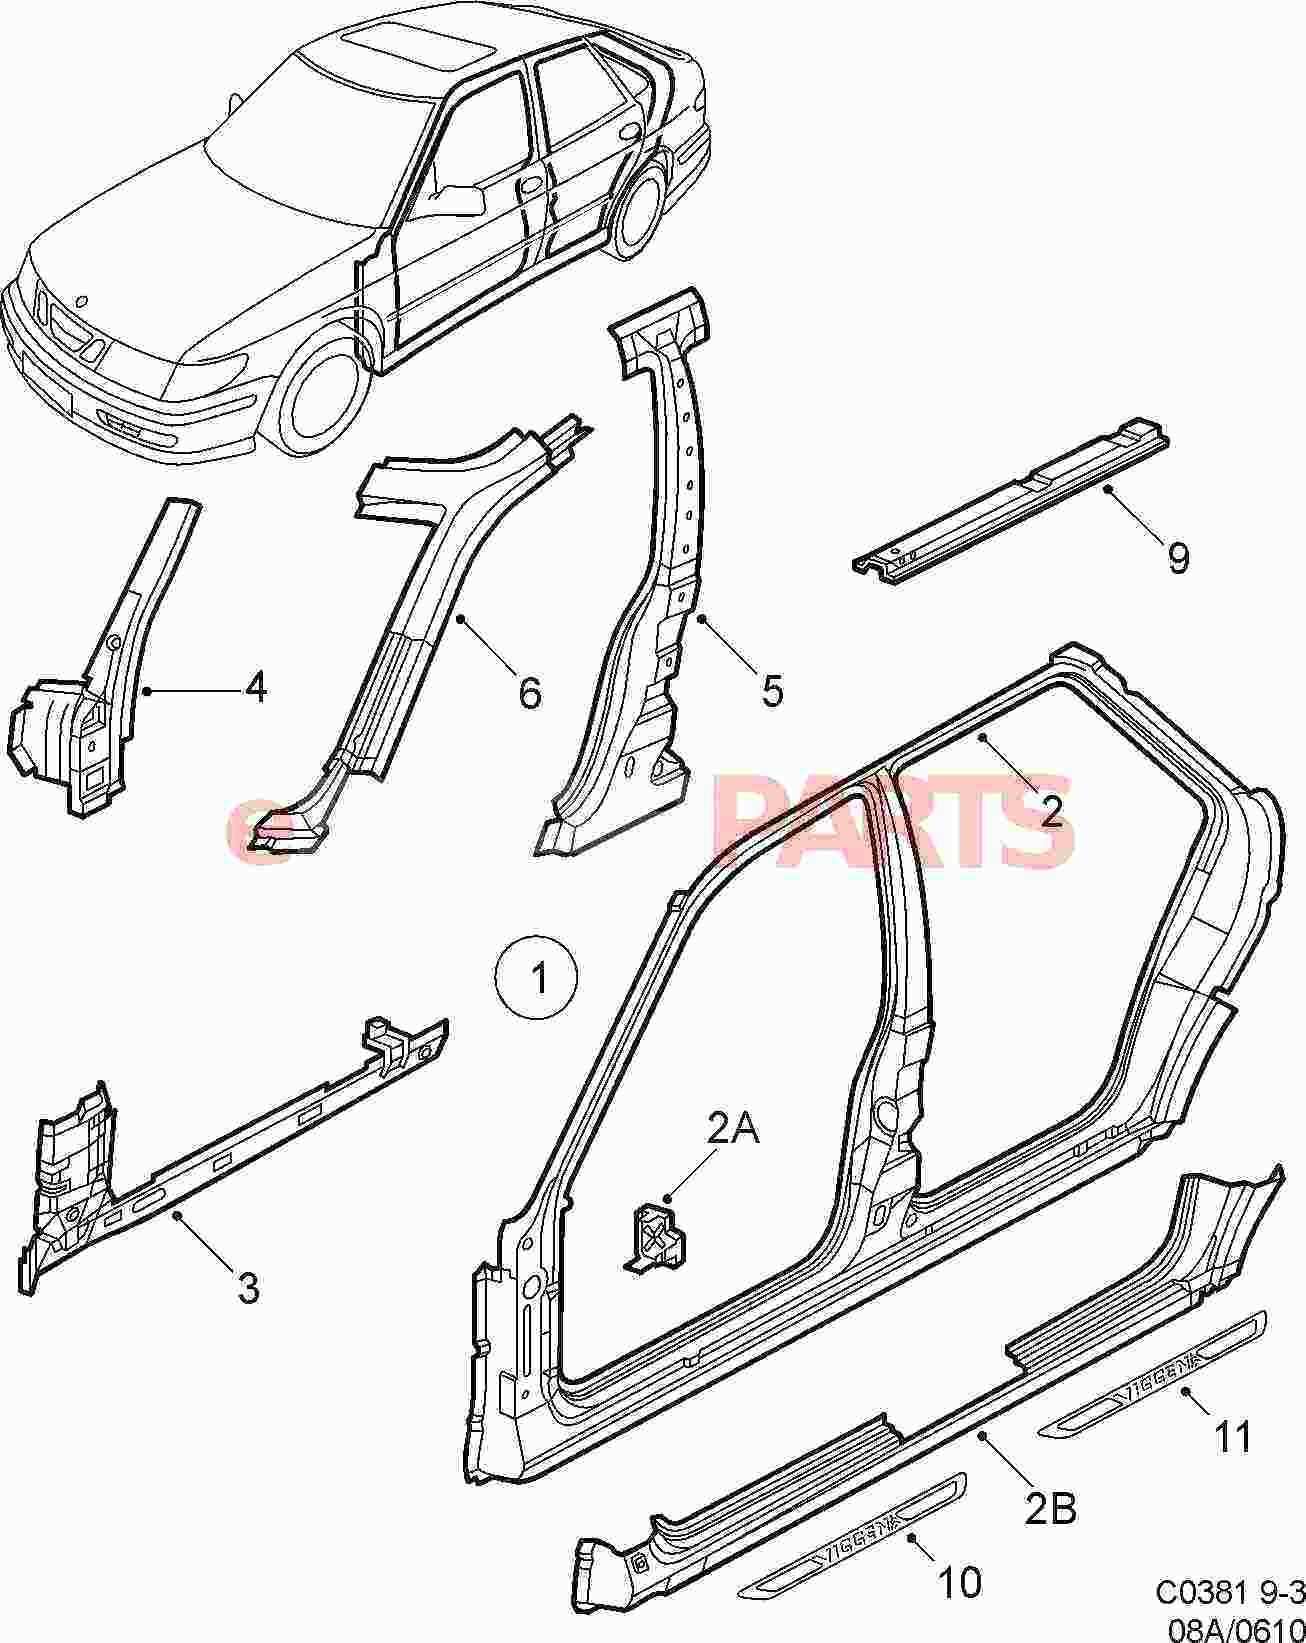 Car body drawing at getdrawings free for personal use car body